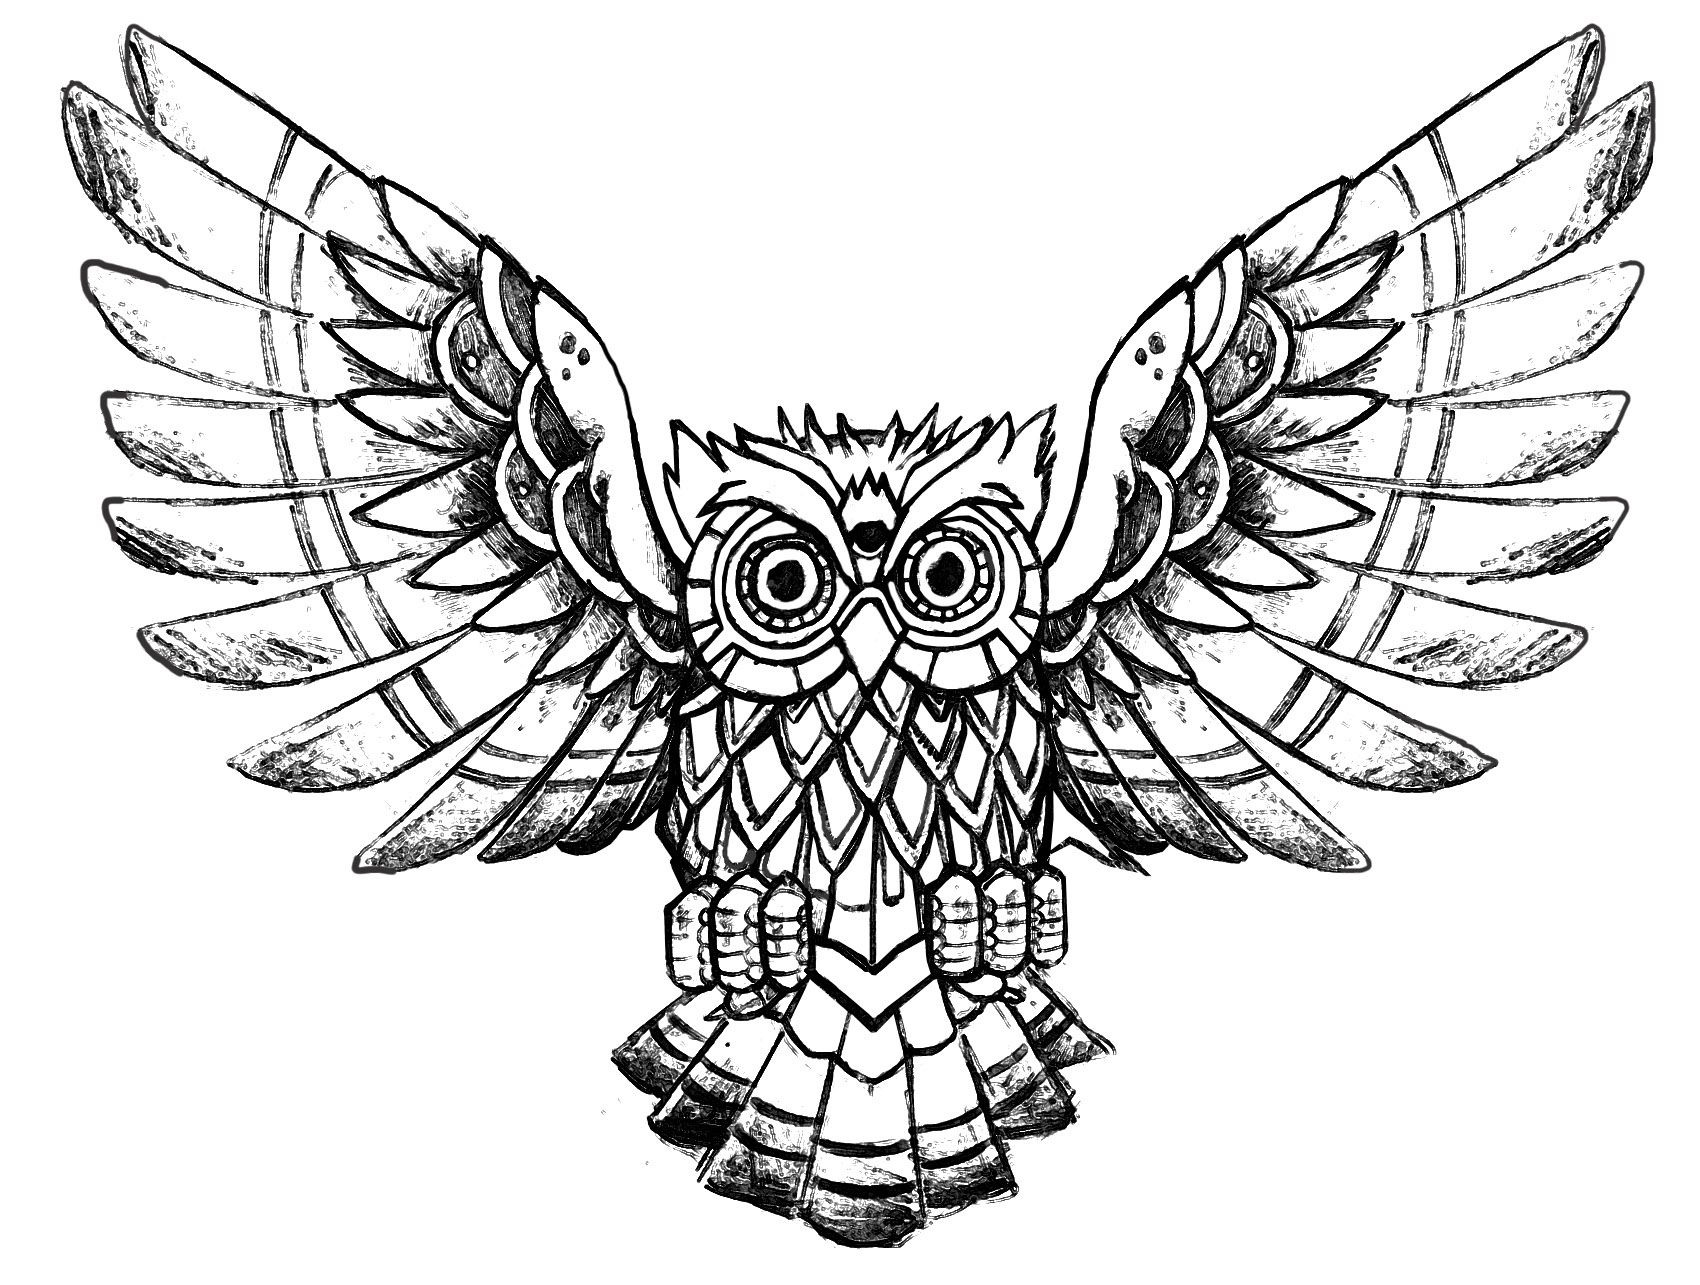 - Owl Raw Drawing - Owls Coloring Pages For Adults - Just Color